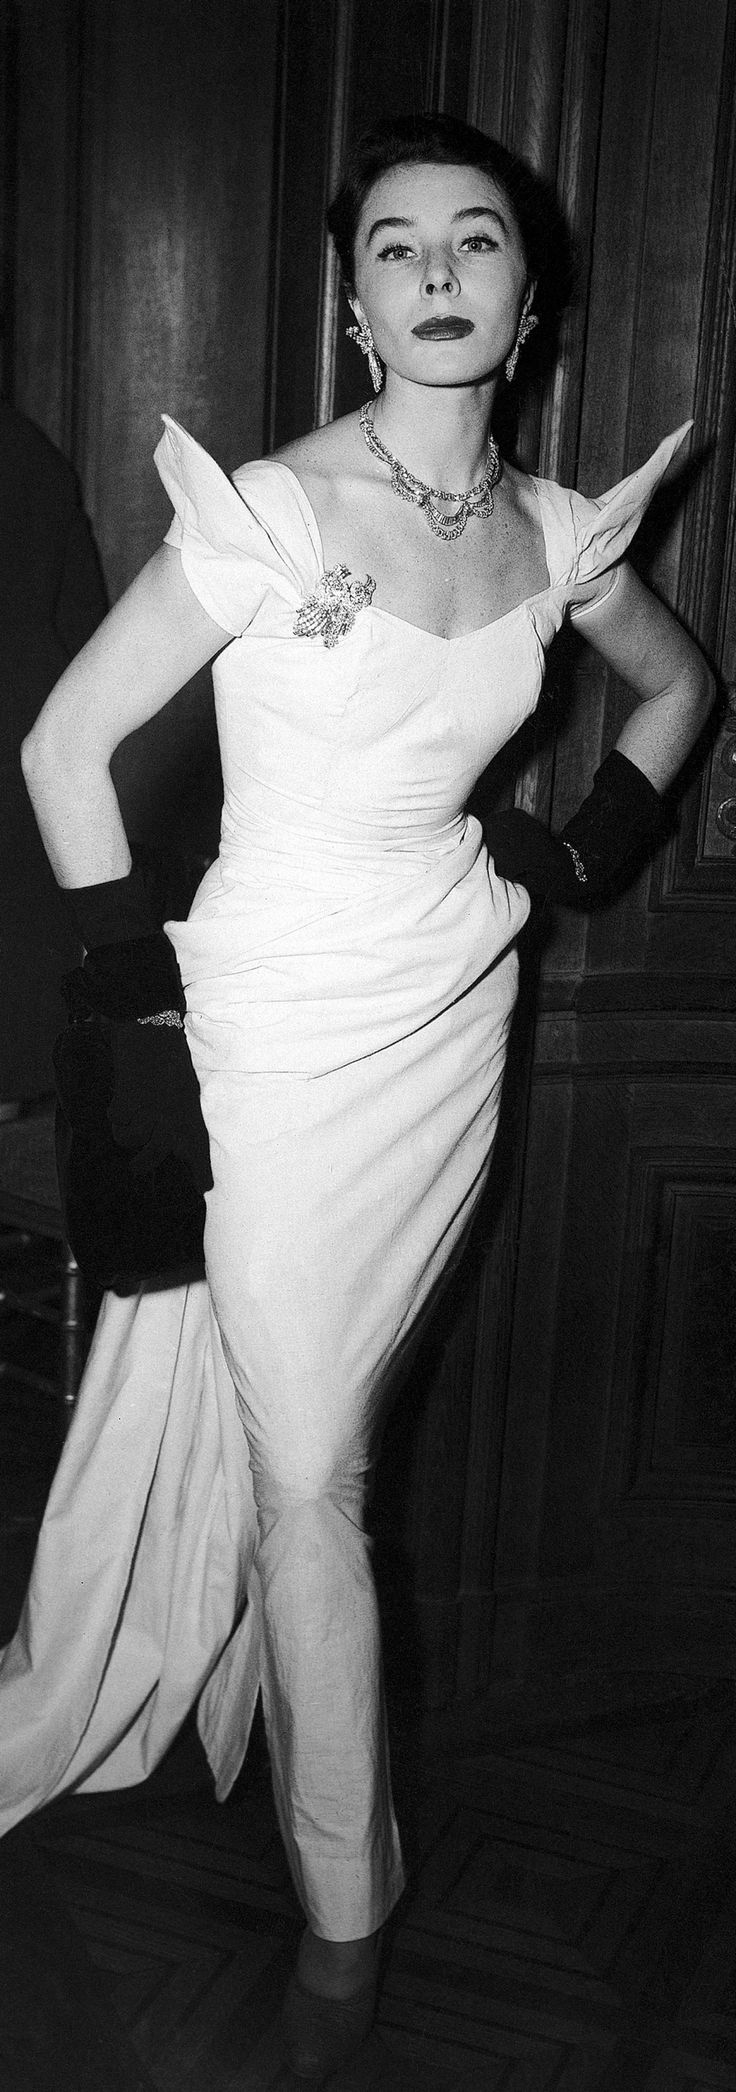 French model Simone Micheline Bodin, known as Bettina, models an evening dress including $35 million worth of jewelry on Nov. 5, 1952. The black evening bag was designed by Andre Dallioux.